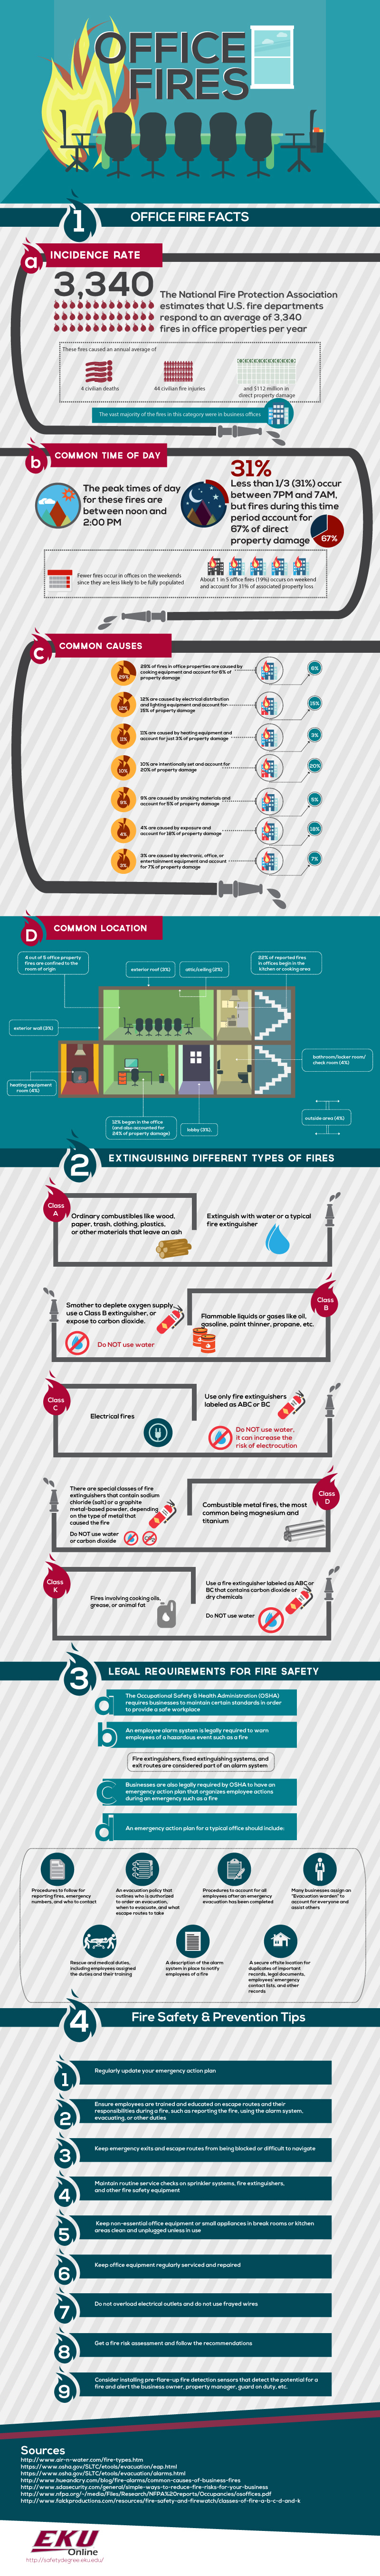 How to Prevent Office Fires [Infographic] | EHS Today